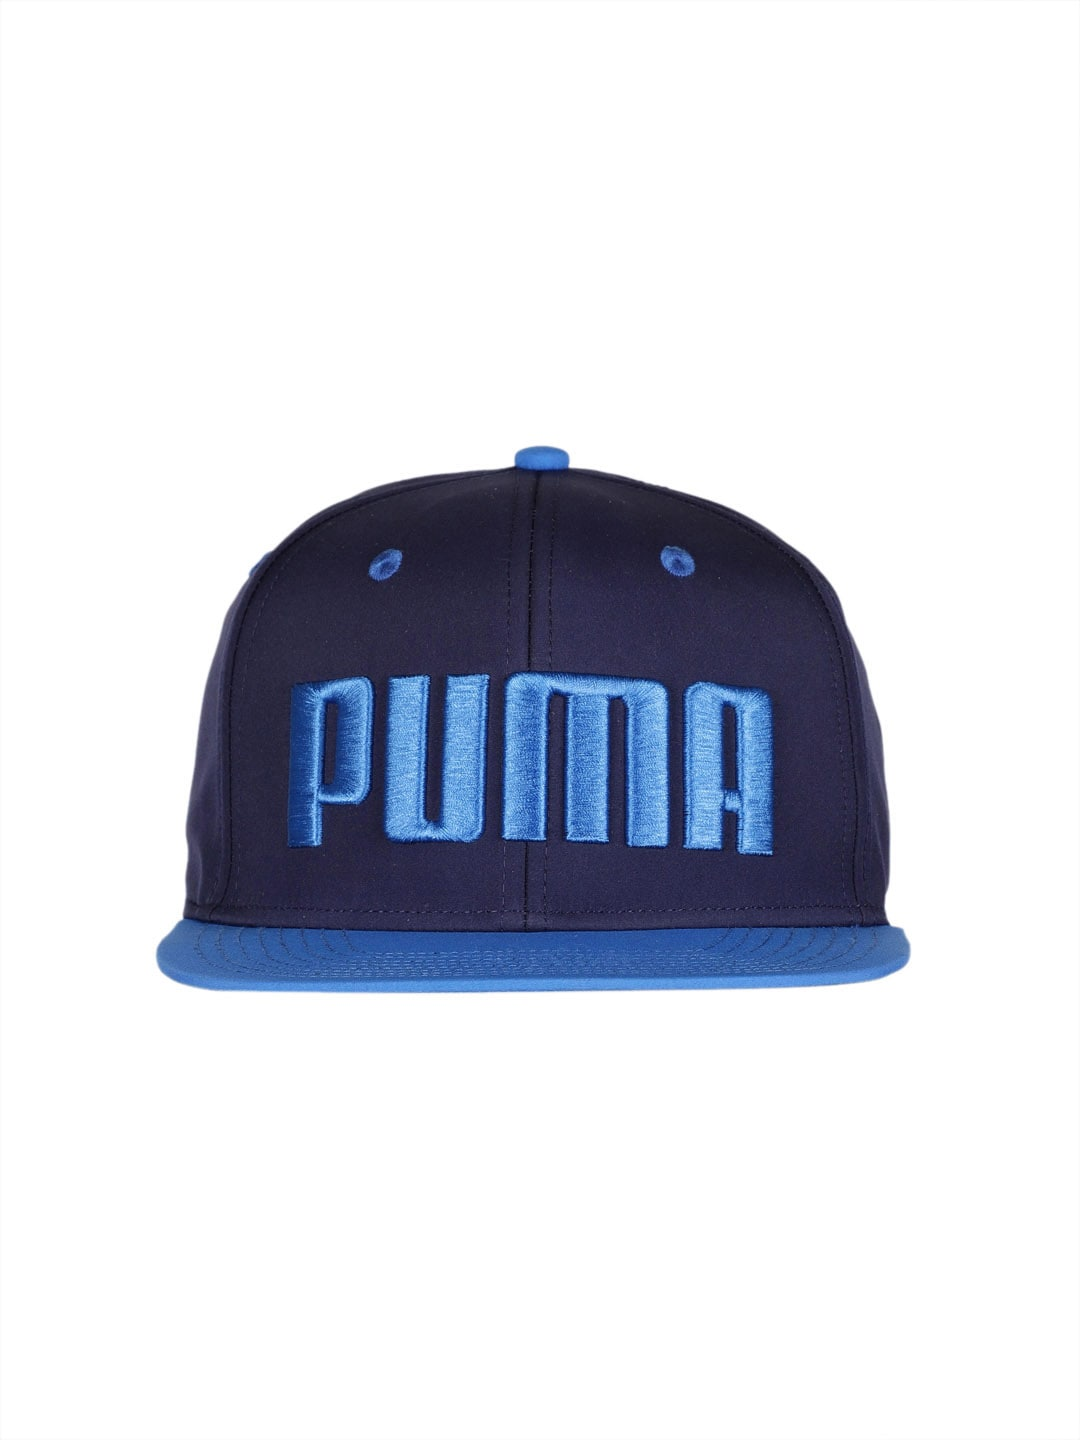 3373d831af9 Puma Ferrari Caps - Buy Puma Ferrari Caps online in India